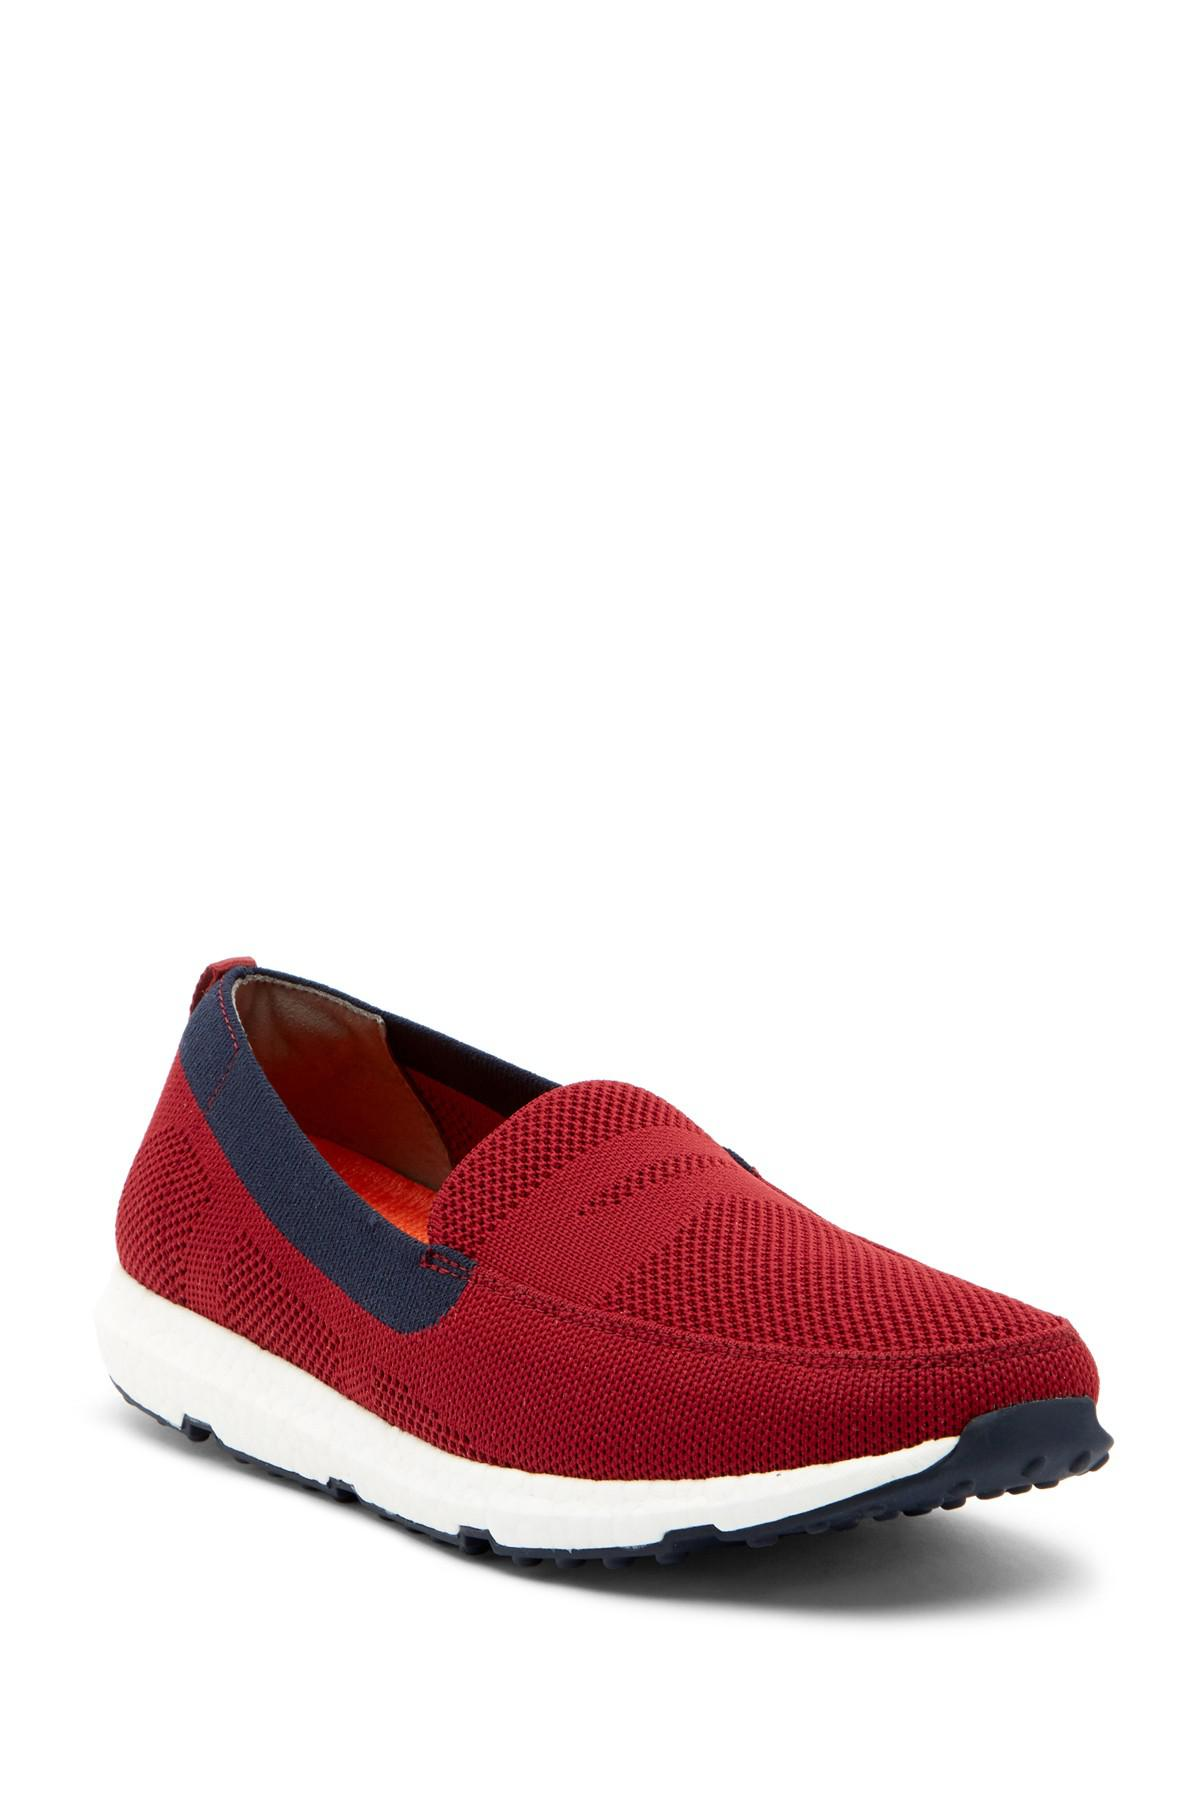 Swims Breeze Leap Slip-On Loafers OVICiwZQ